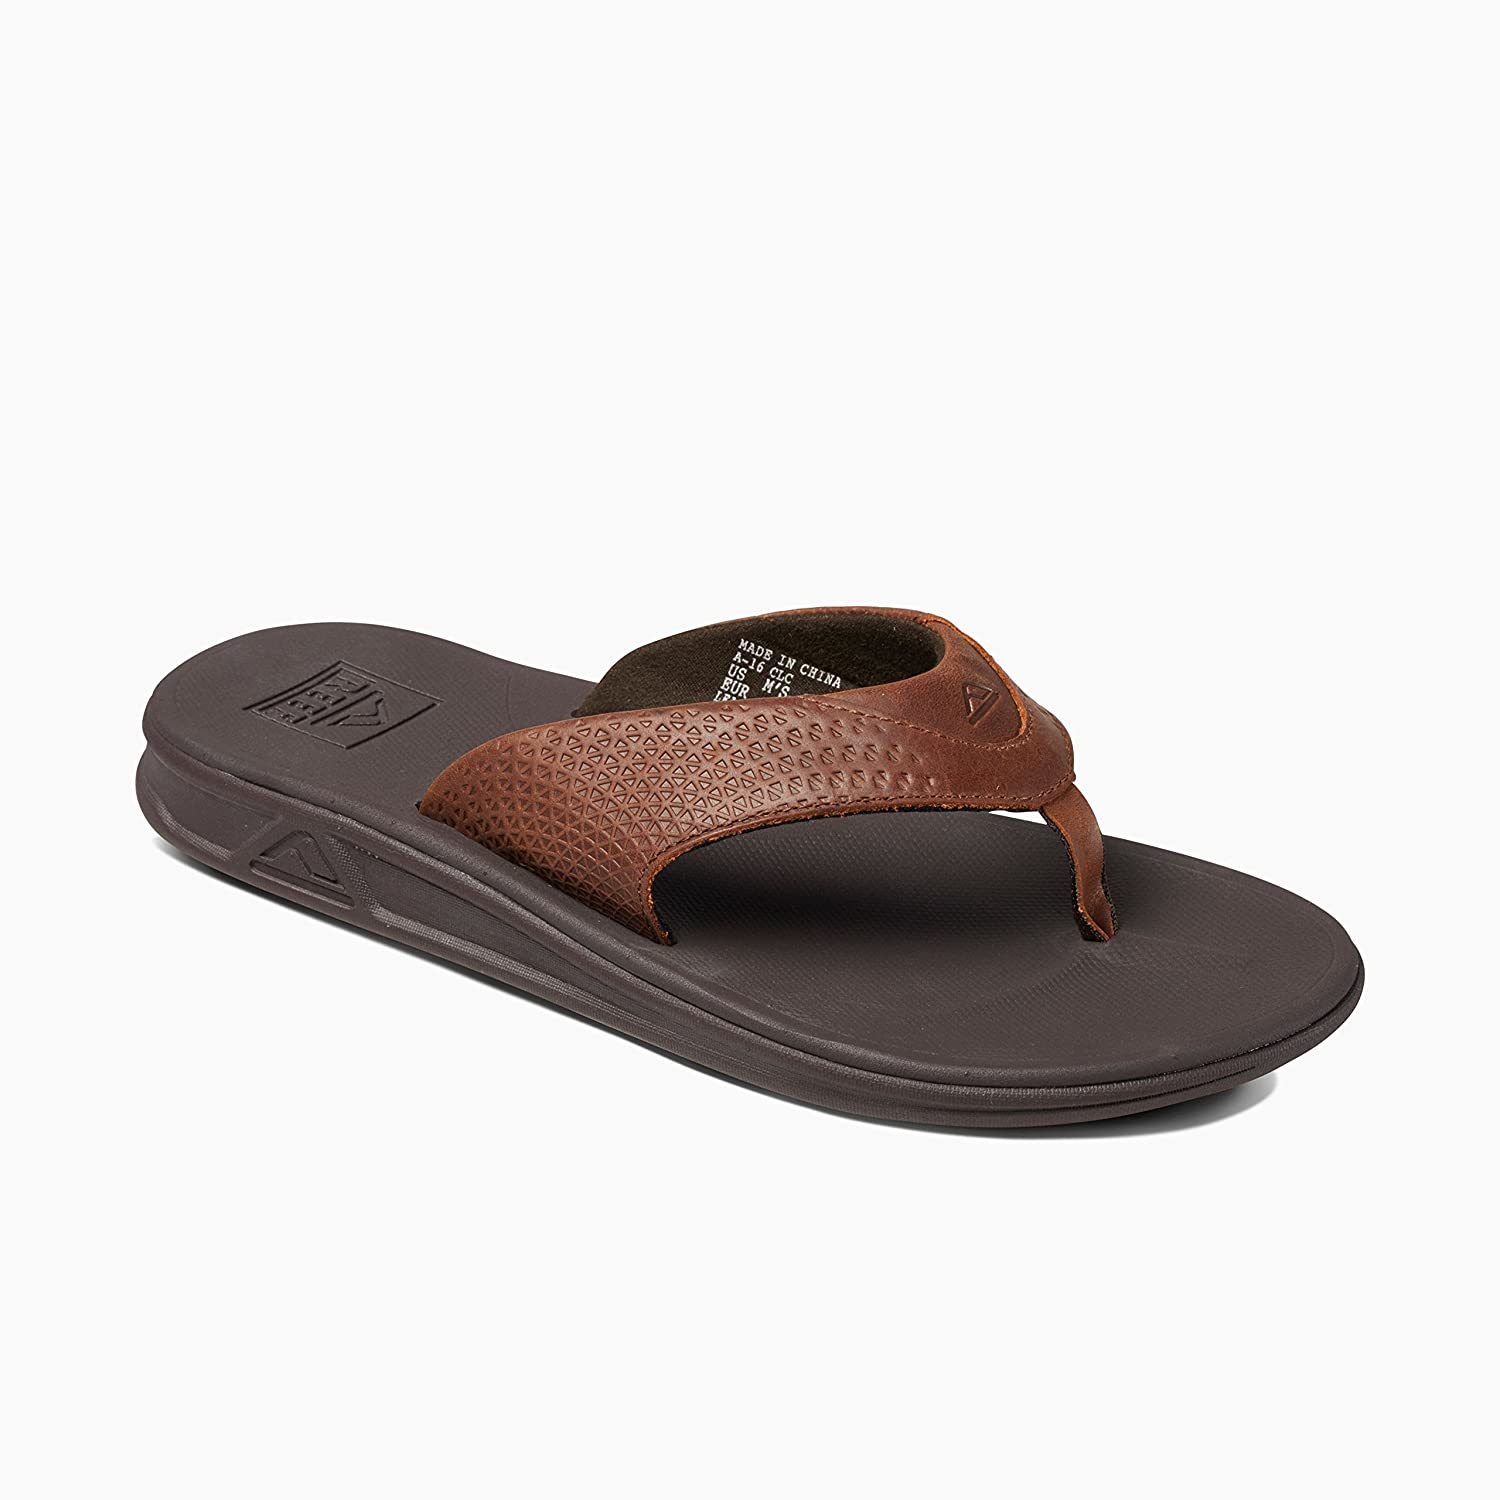 Reef Mens Sandals Rover Le Premium Real Leather Flip Flops For Men With Soft Cushion Footbed Waterproof